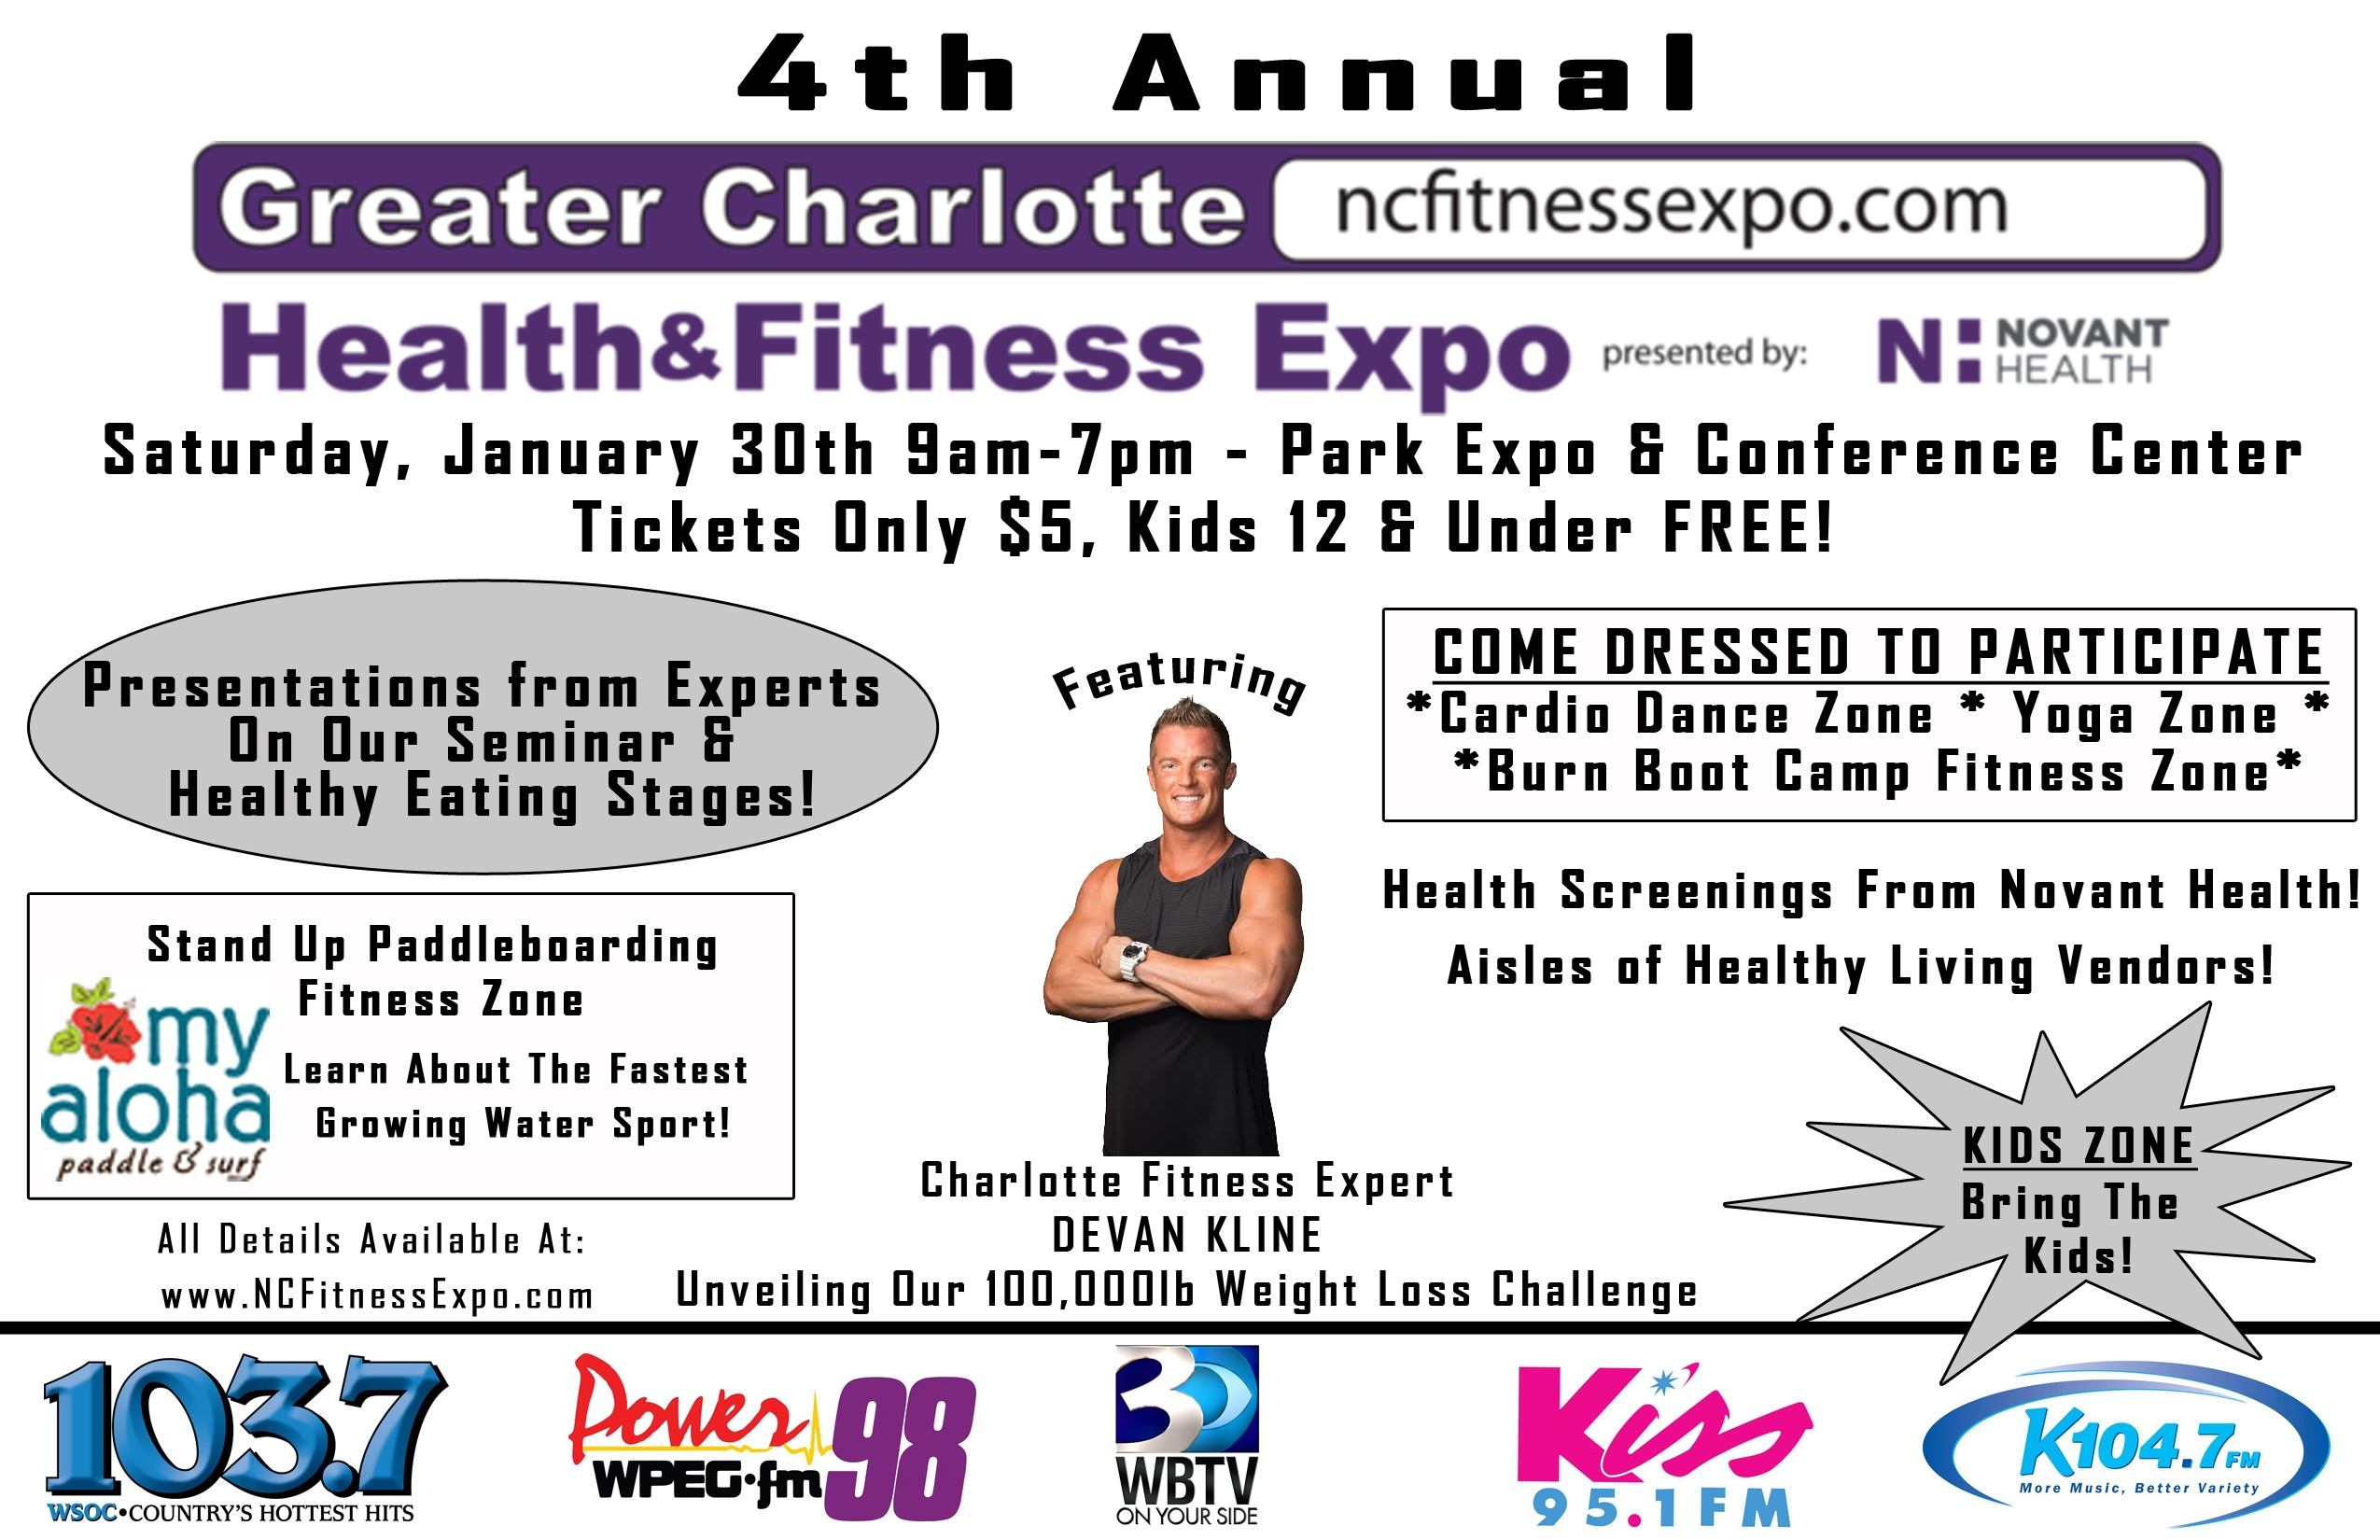 Greater Charlotte Health & Fitness Expo